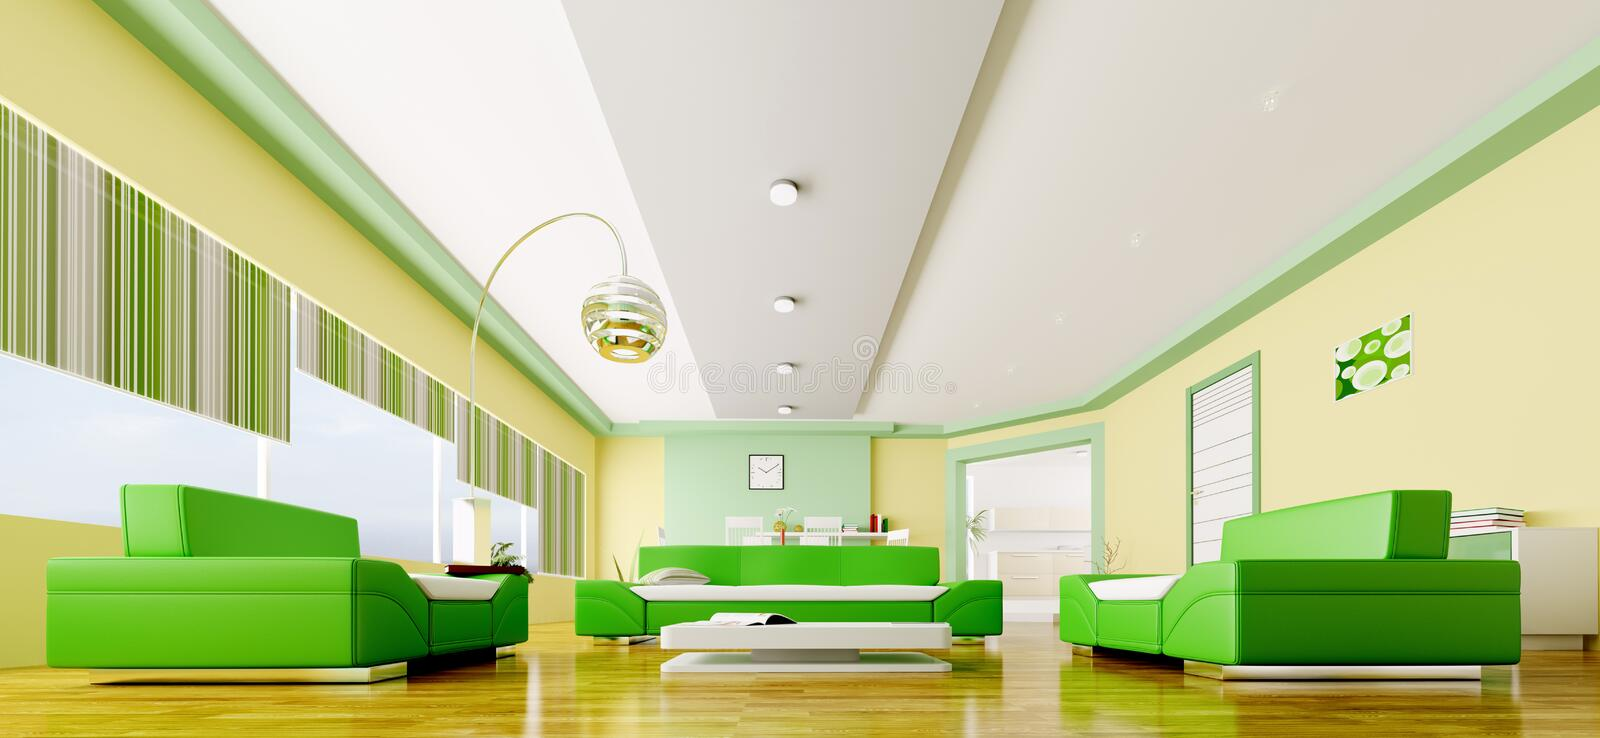 Interior of modern living room panorama 3d royalty free illustration